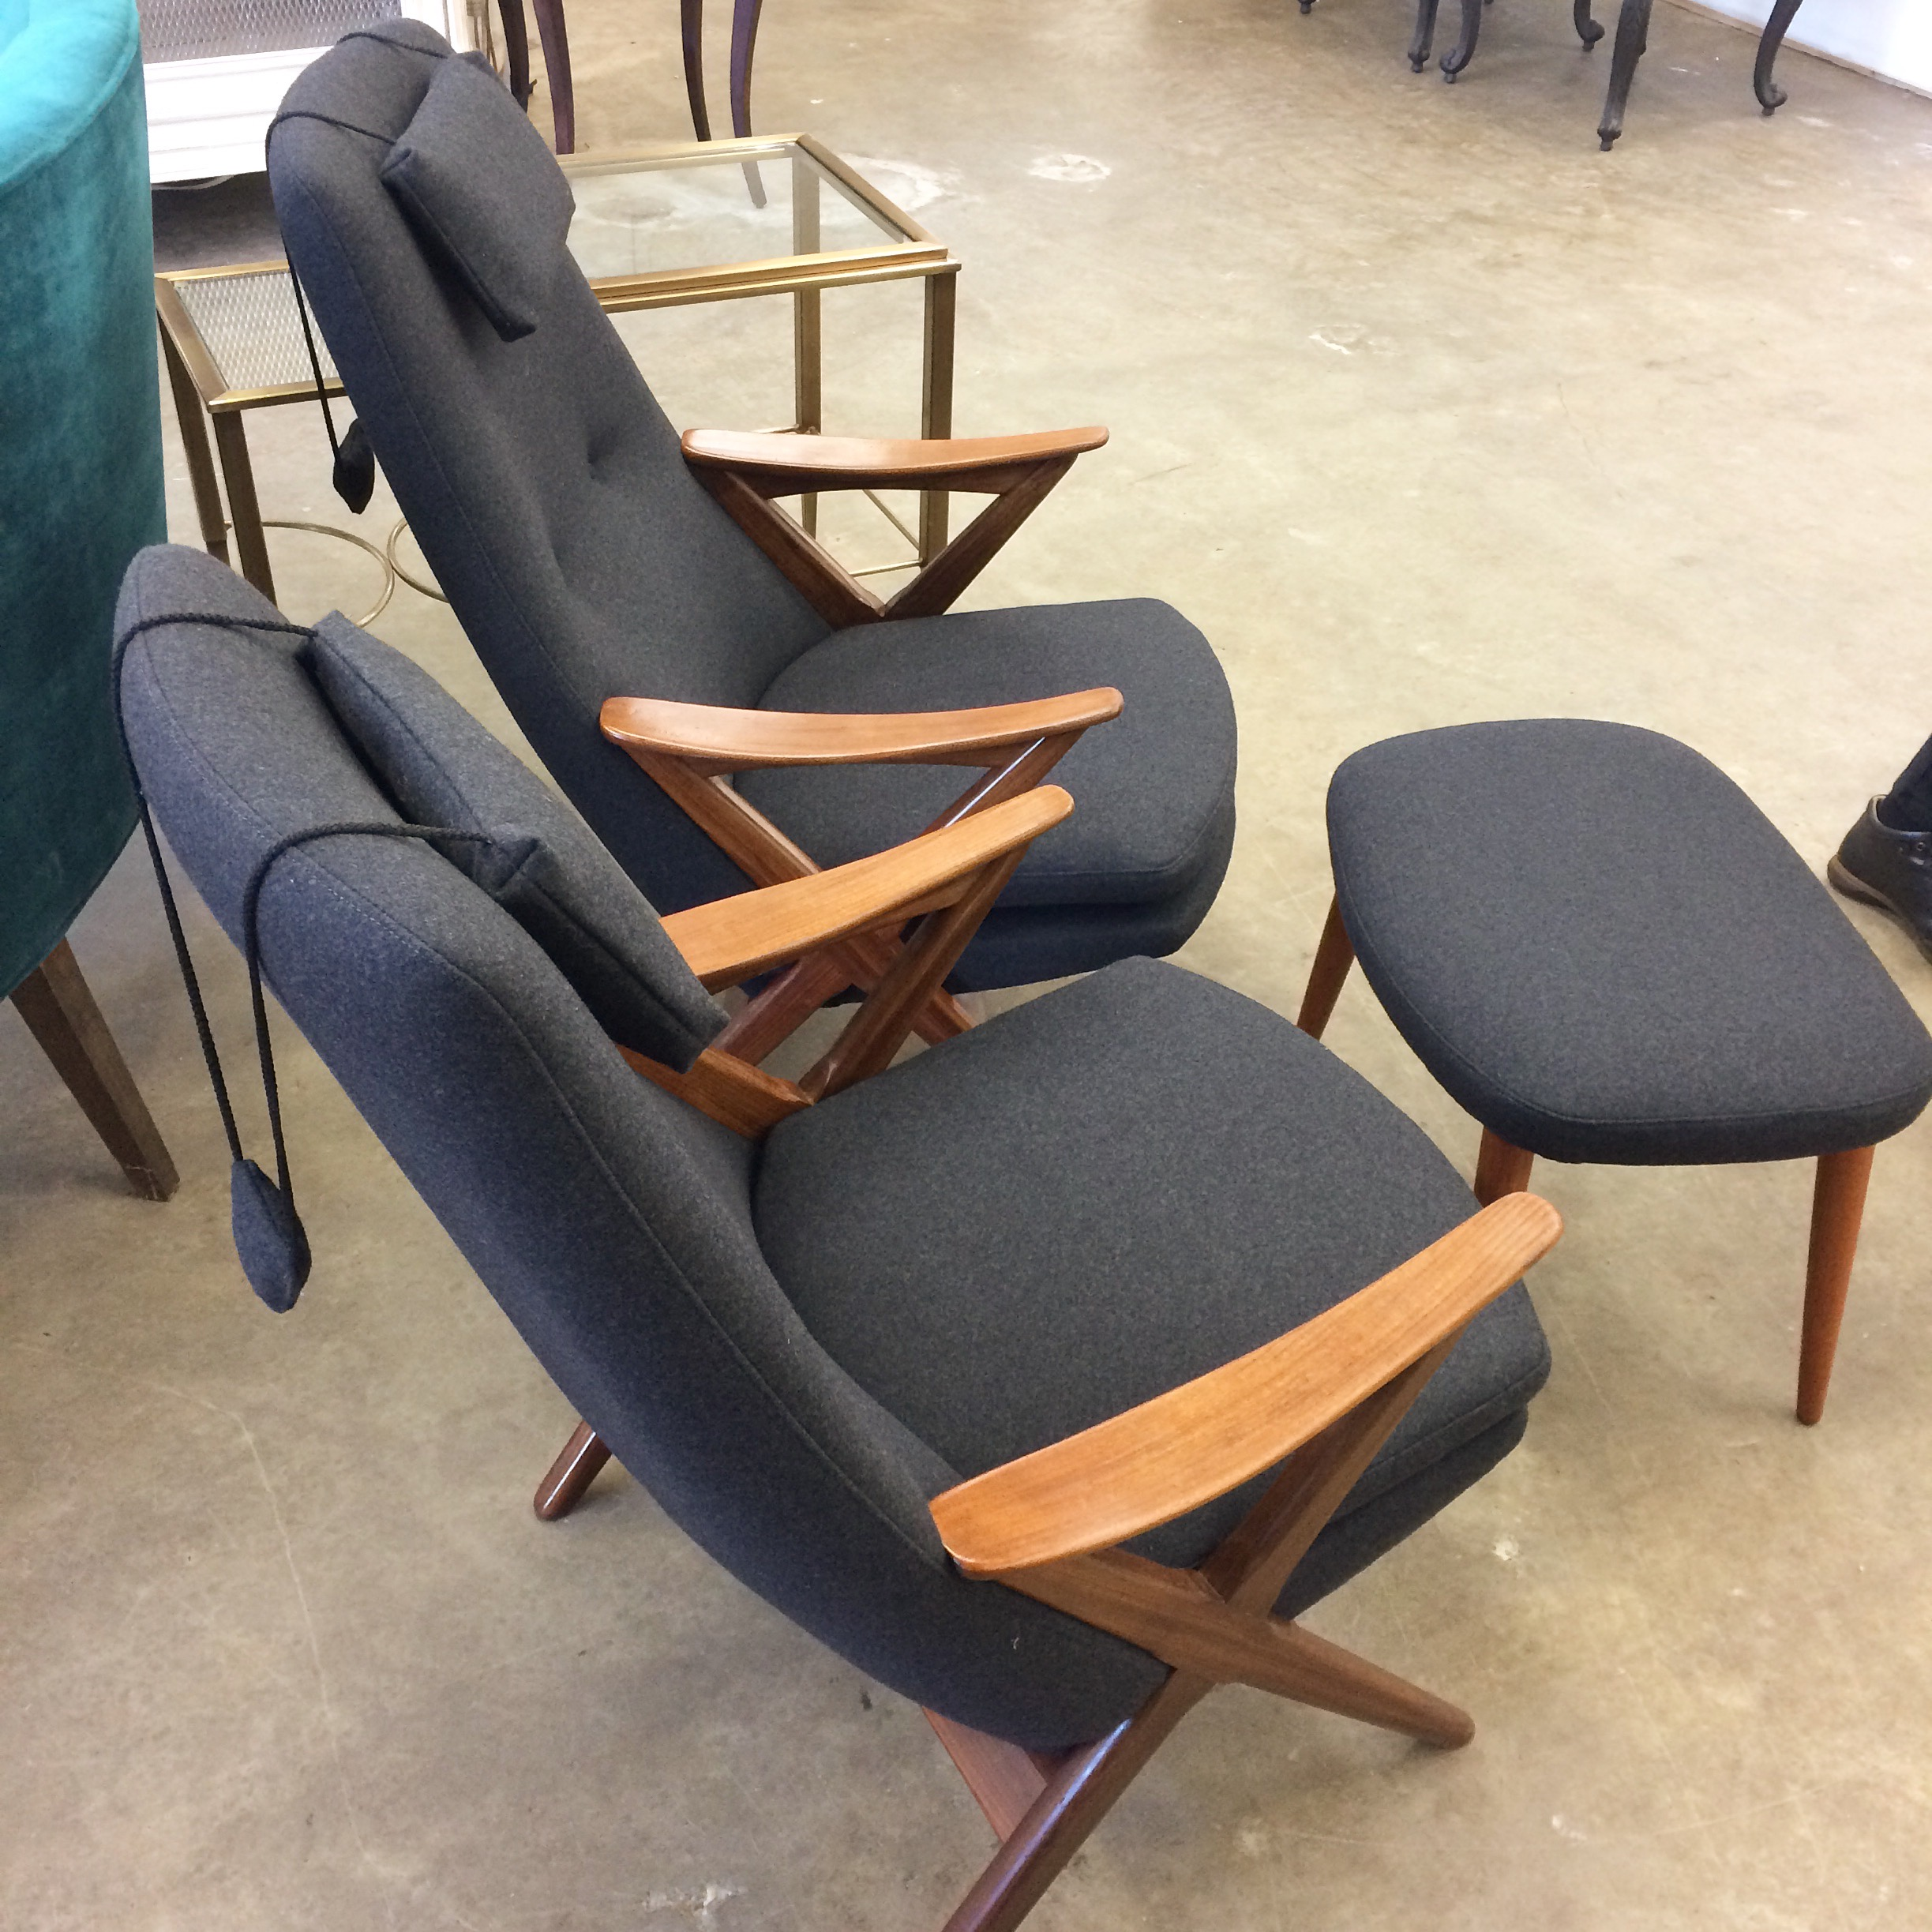 Mid Century Modern teak arm chairs, with button tufting and weighted headrests.